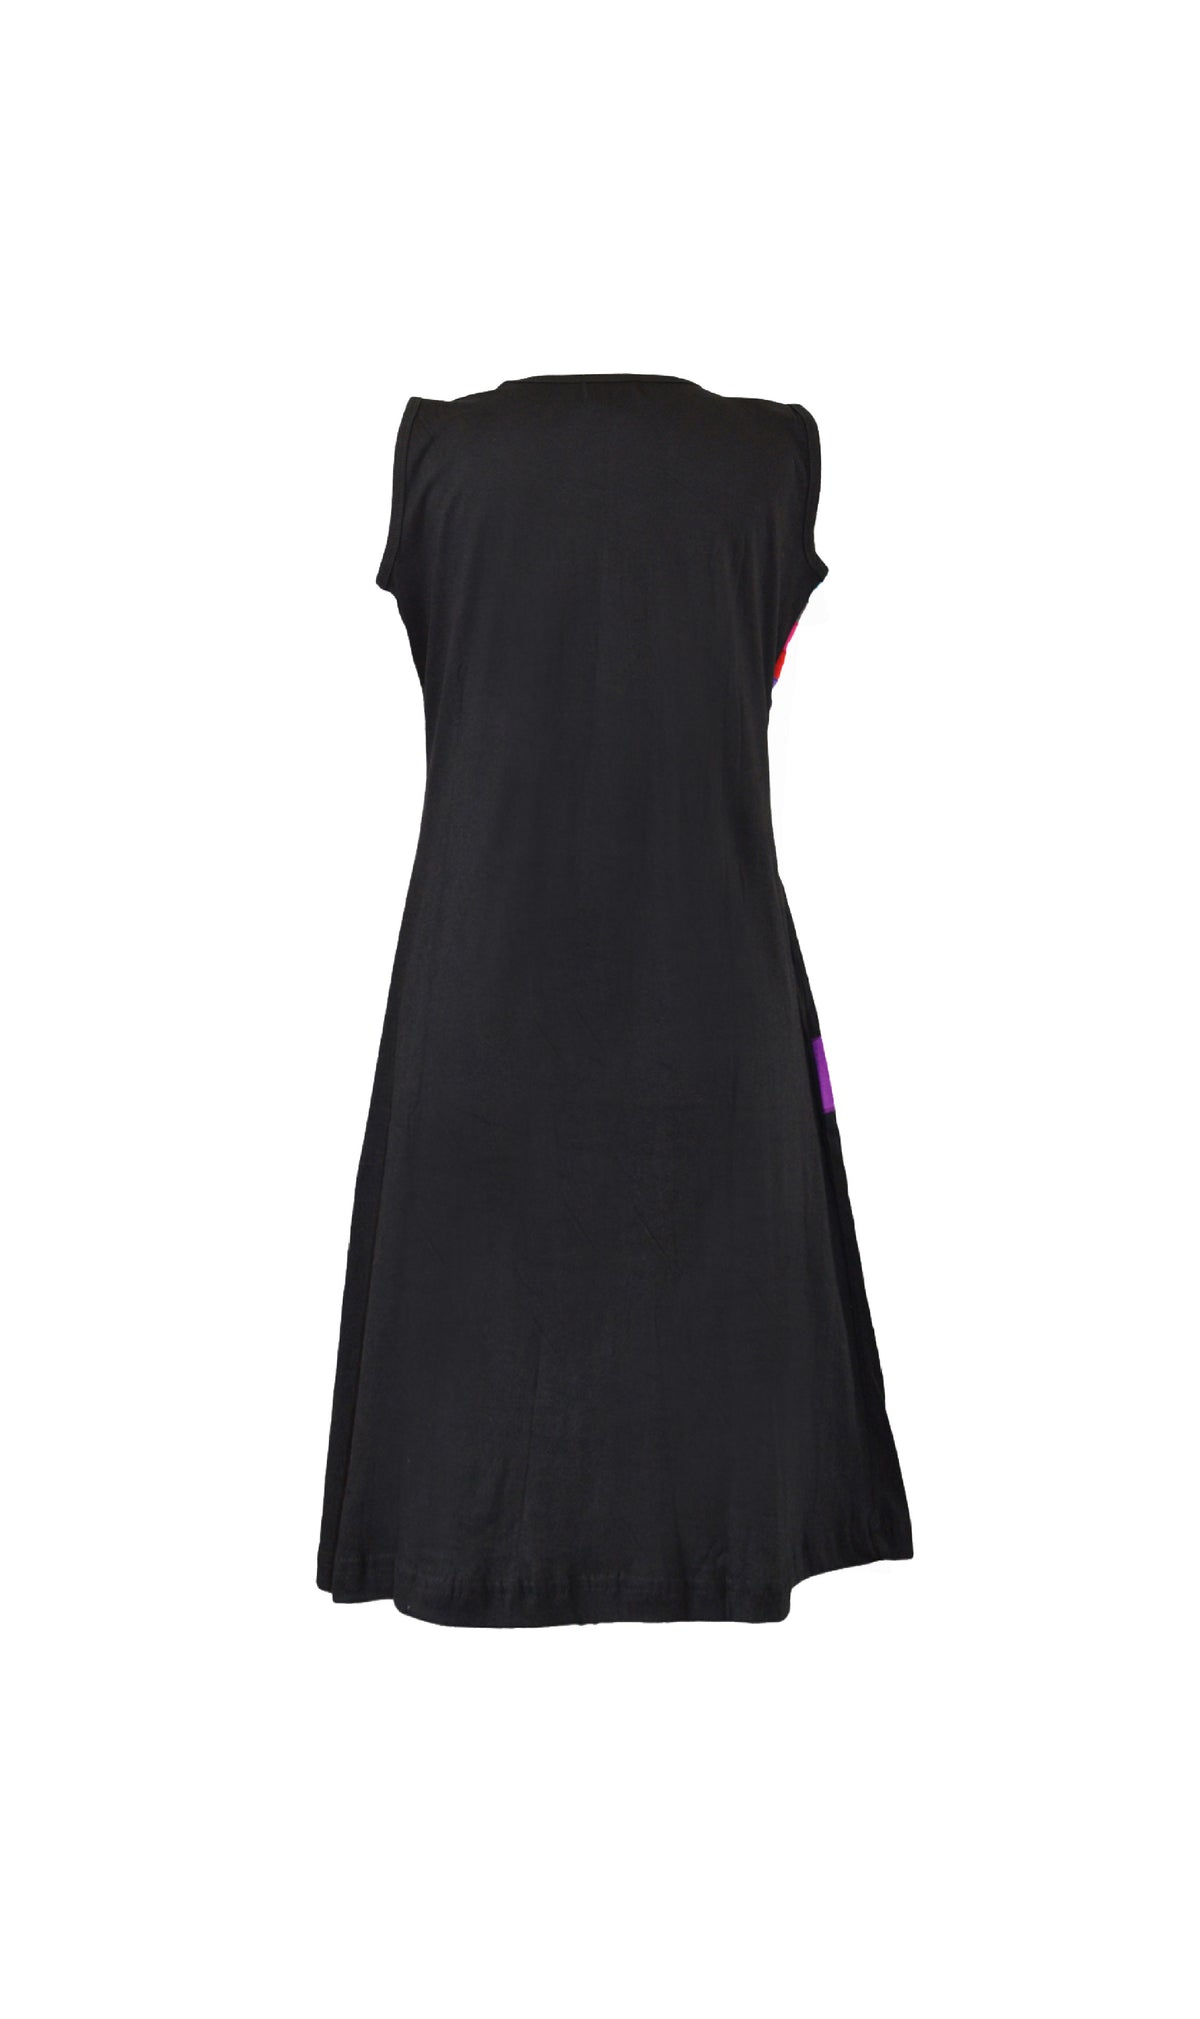 Sleevless dress for ladies with square patch design - Craze Trade Limited